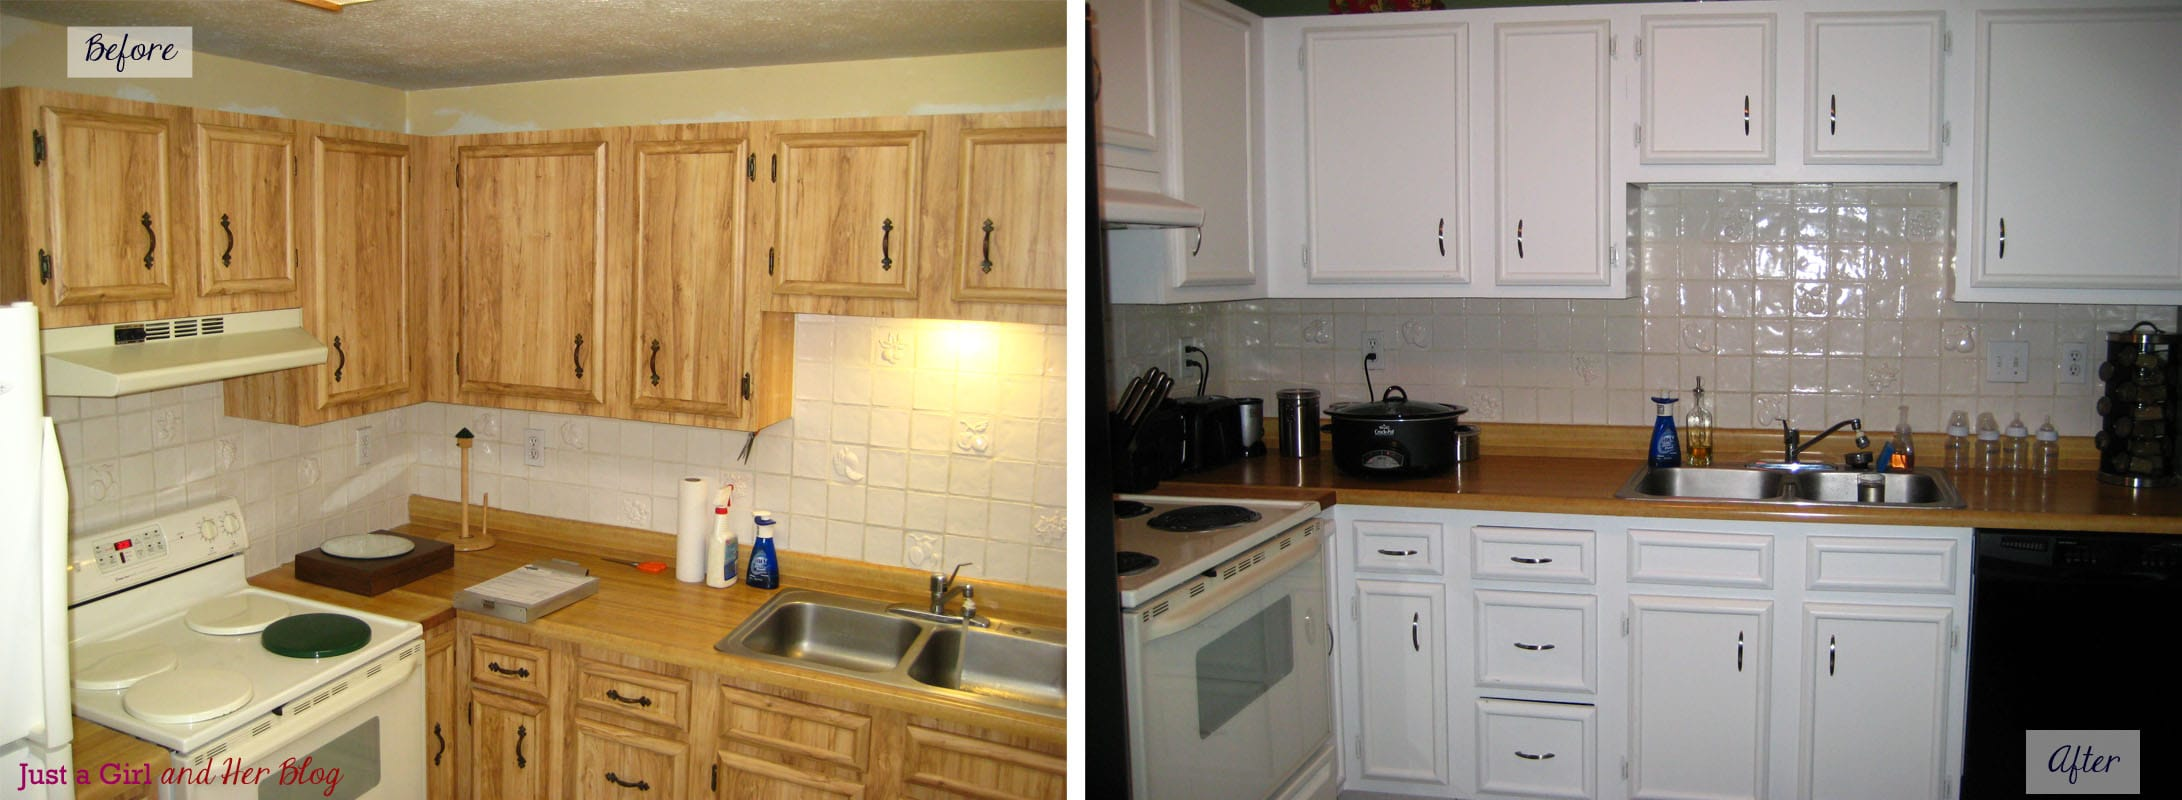 Painted Kitchen Cabinet Reveal With Before And After White Painted